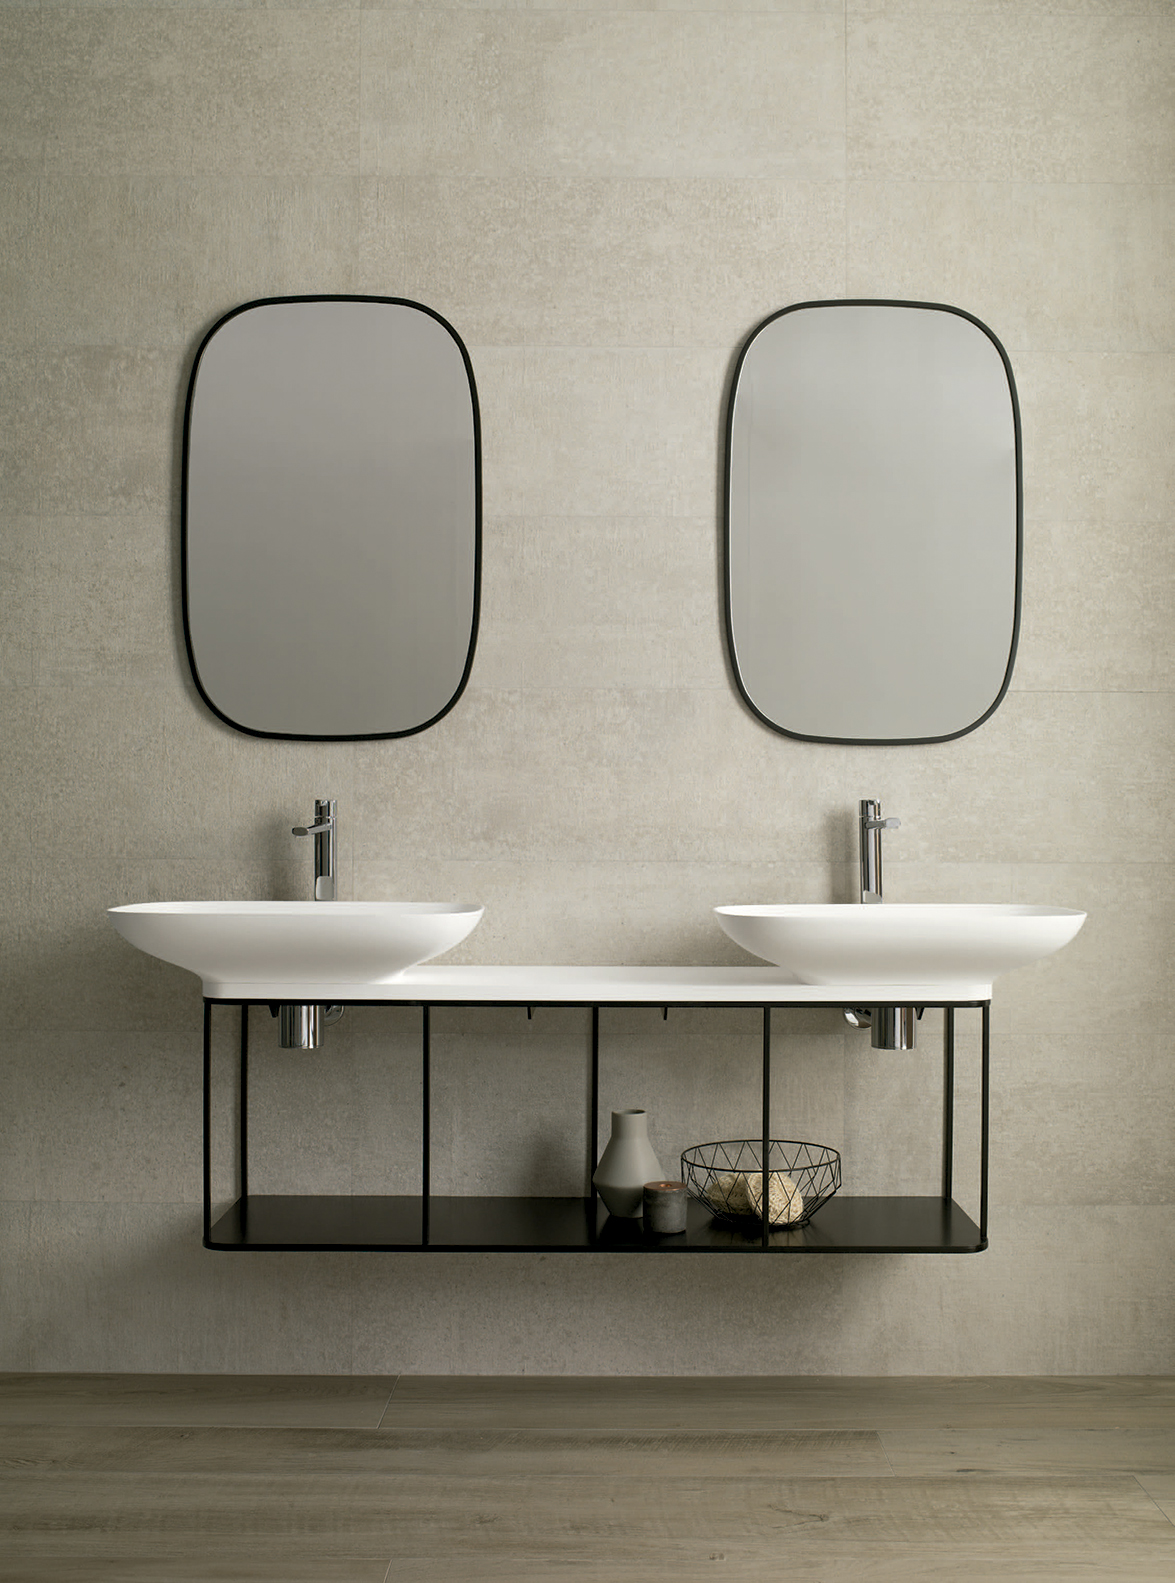 Pure Bathroom Collection By Yonoh For Porcelanosa Delicate Mixture Of Organic Shapes And Geometrical Designs News Infurma Online Magazine Of The International Habitat Portal Design Contract Interior Design Furniture Lighting And